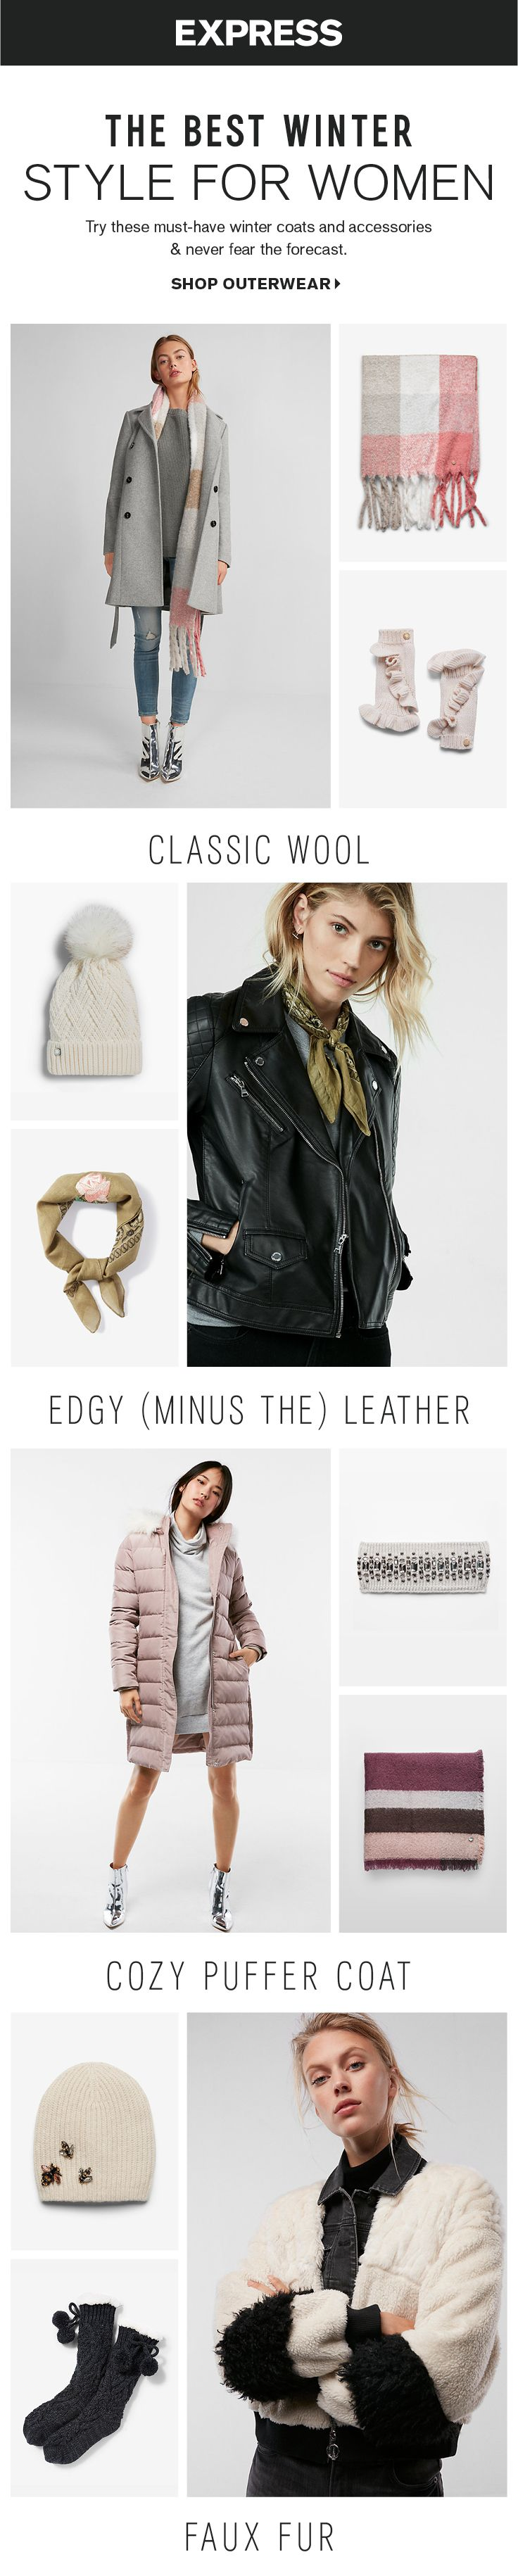 Shop the best winter style for women at Express. For classic style, go for a women's gray peacoat and blush pink winter accessories. If you're edgy, opt for a (minus the) leather moto jacket and a pom beanie for women. The puffer coat for women is great for sporty style, or go for an extra luxe look in faux fur jacket. Shop them all at Express now!